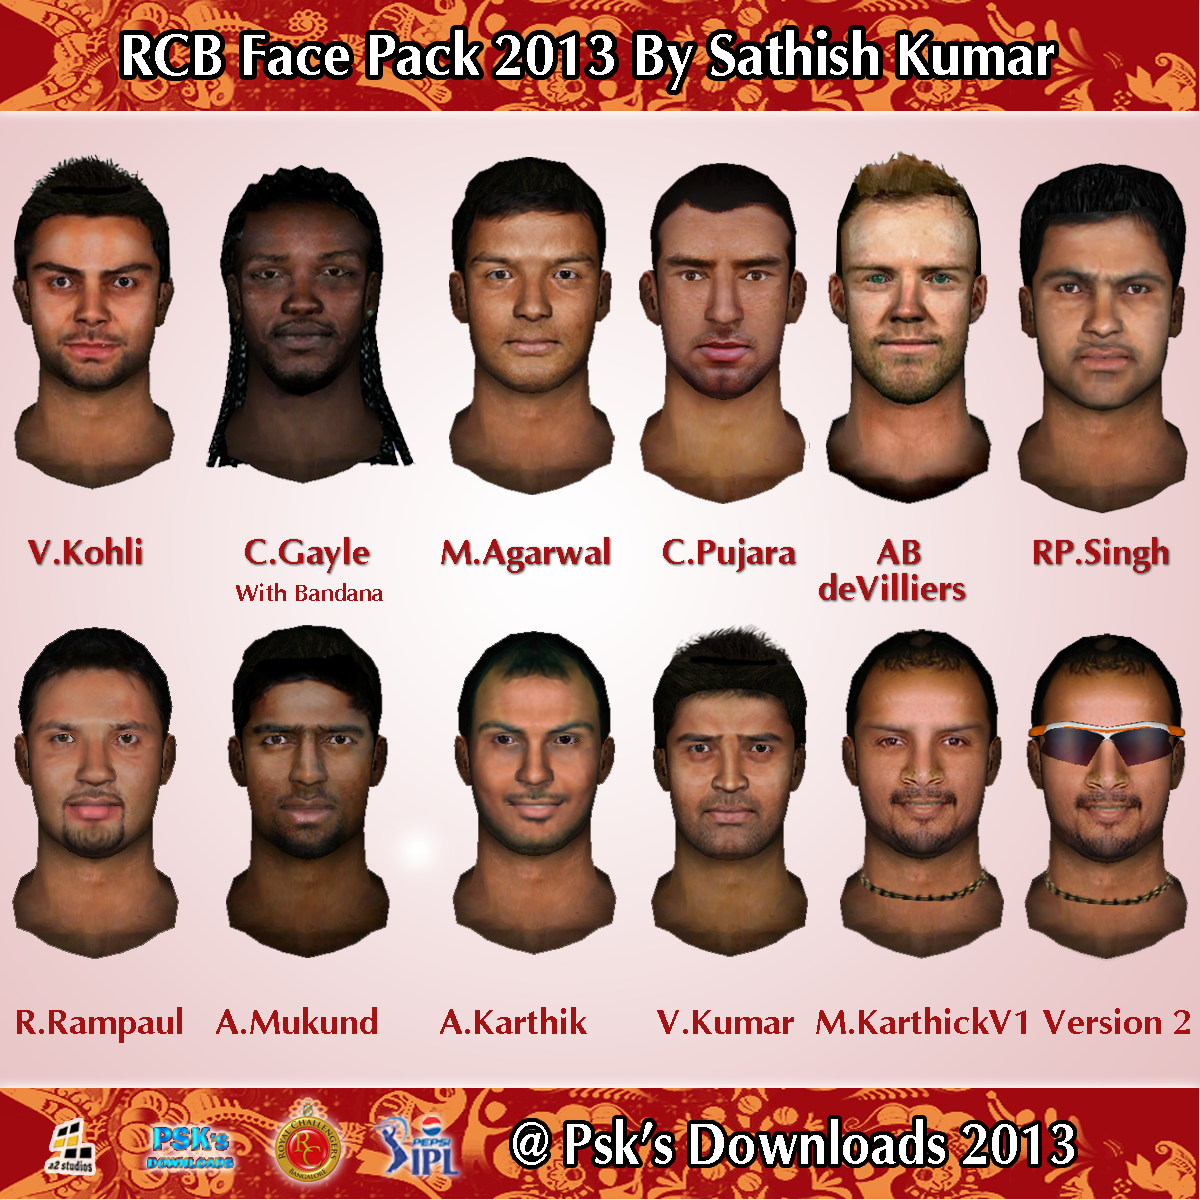 Ntr Ipl Add Download: Royal Challengers Bangalore Face Pack